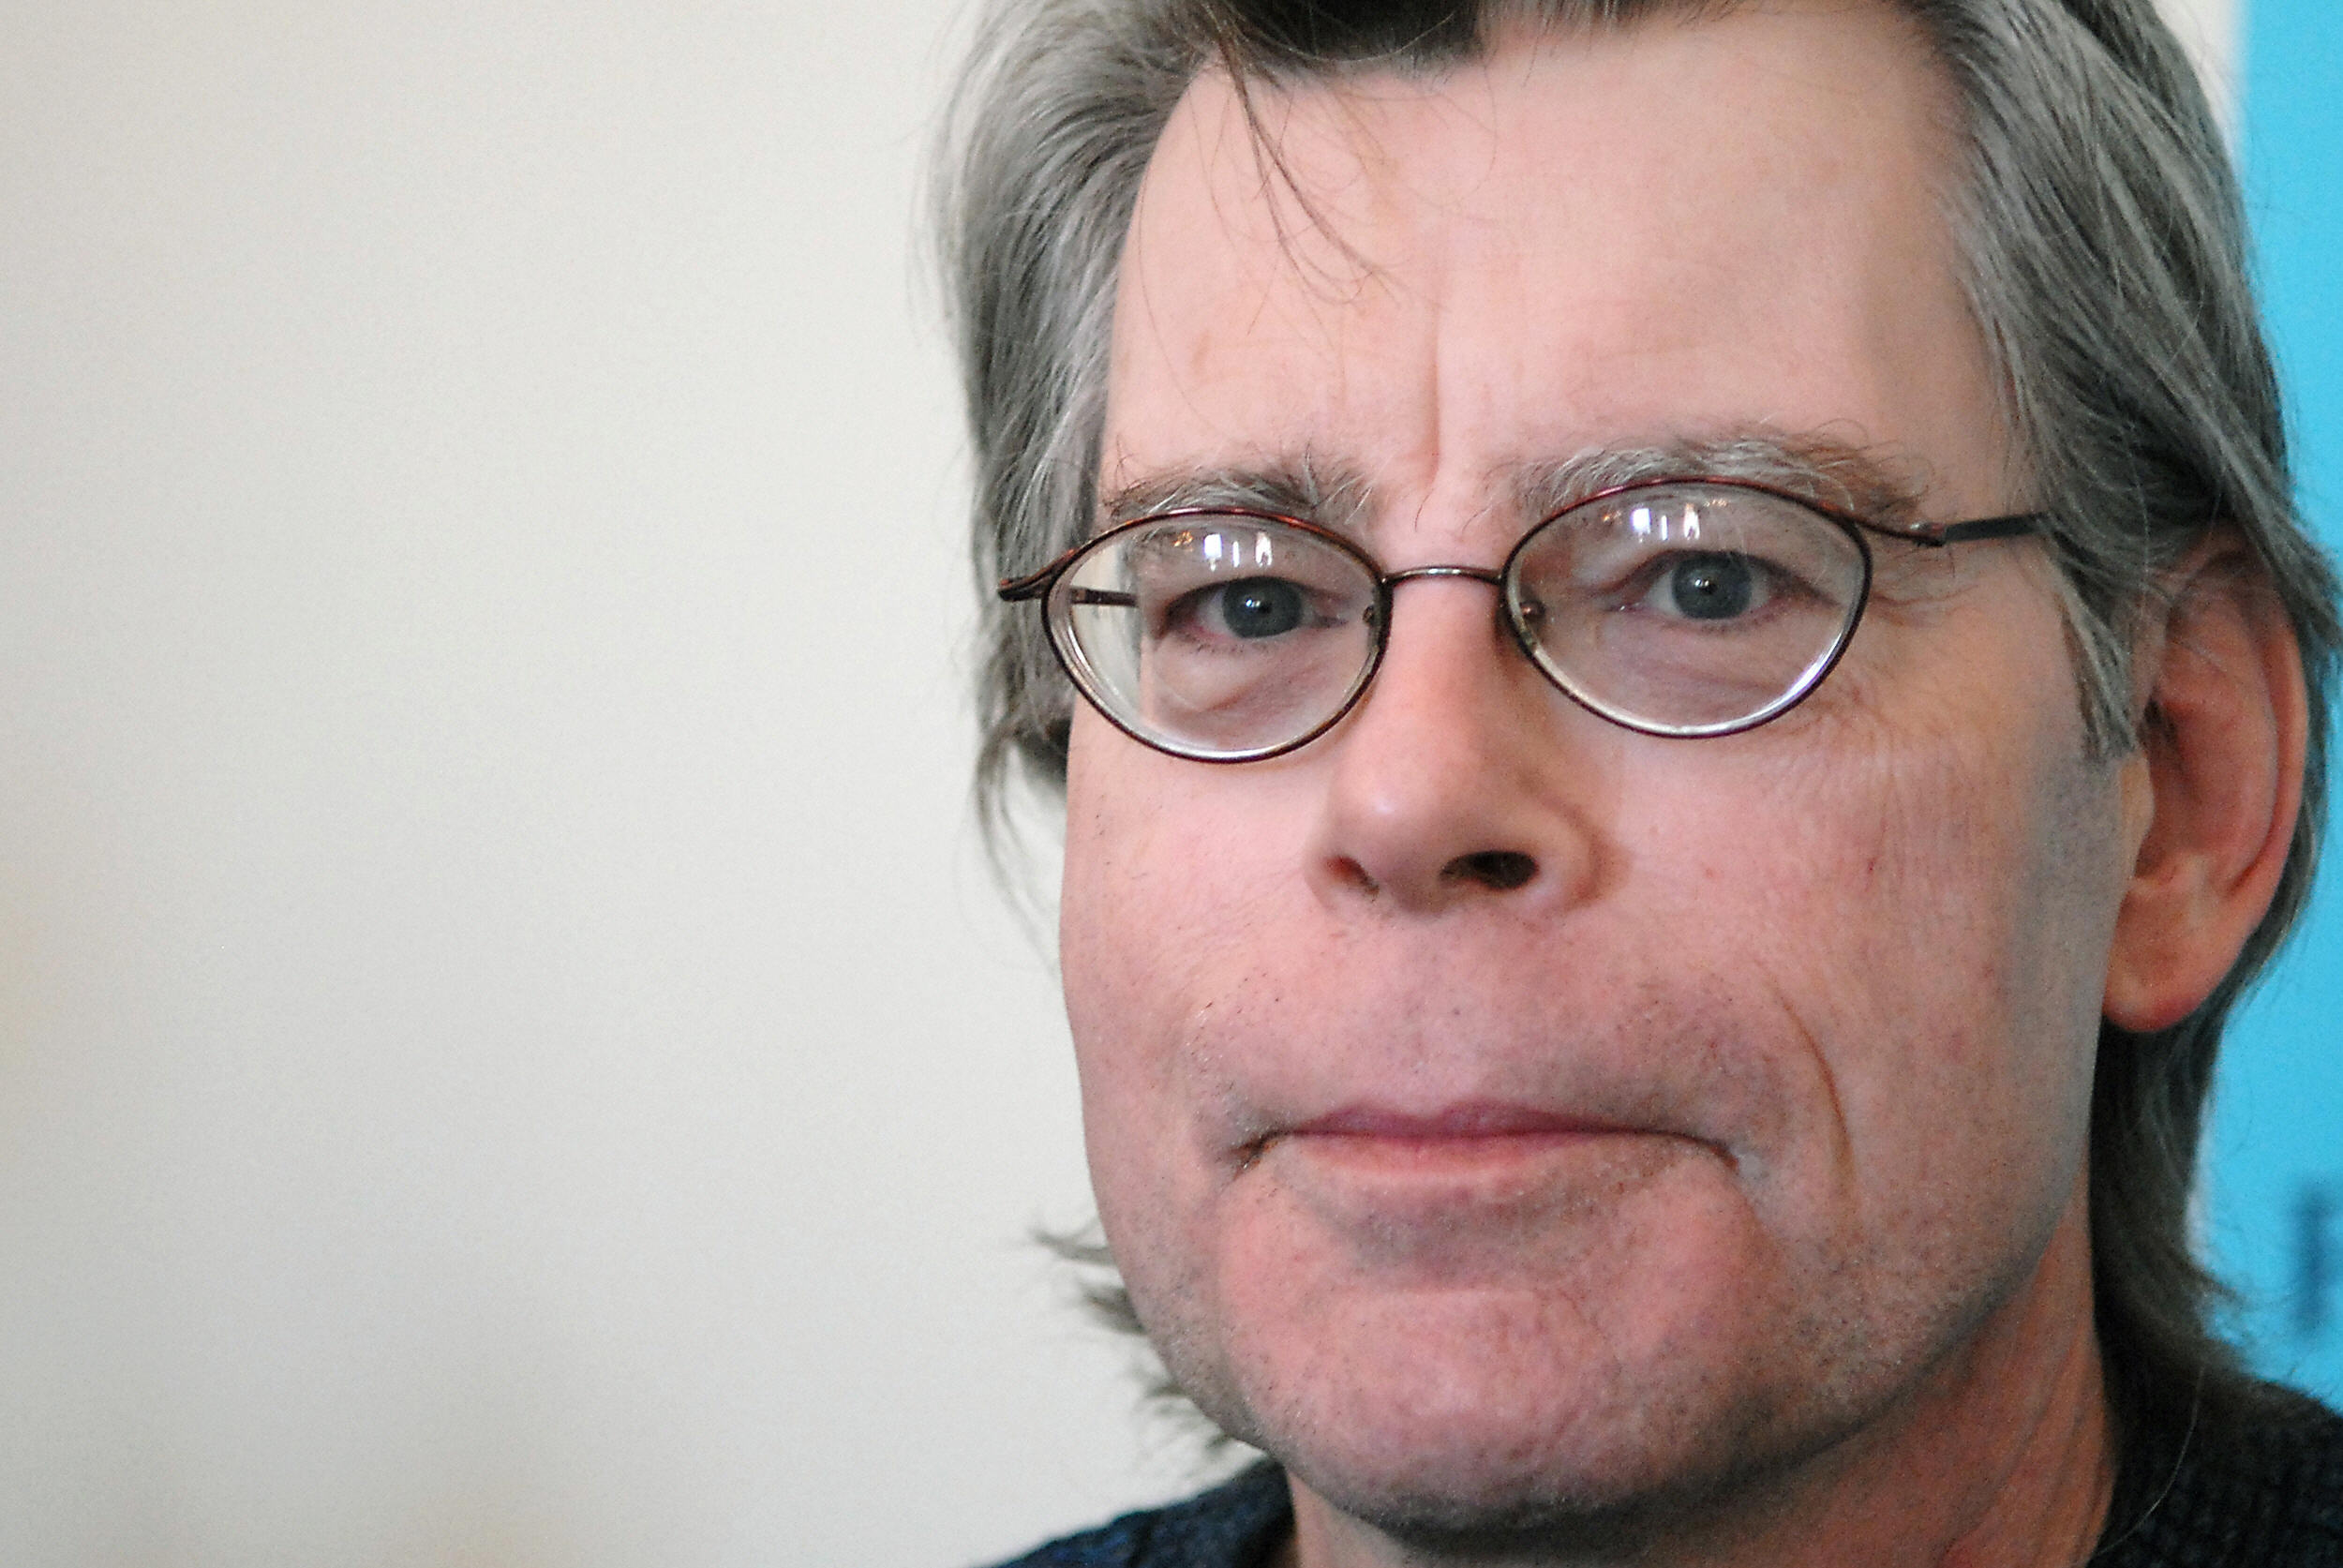 biography of stephen edwin king Stephen edwin king, september 21, american author stephen king was born on  the 21 september 1947 in portland, maine, his parents were donald king and.